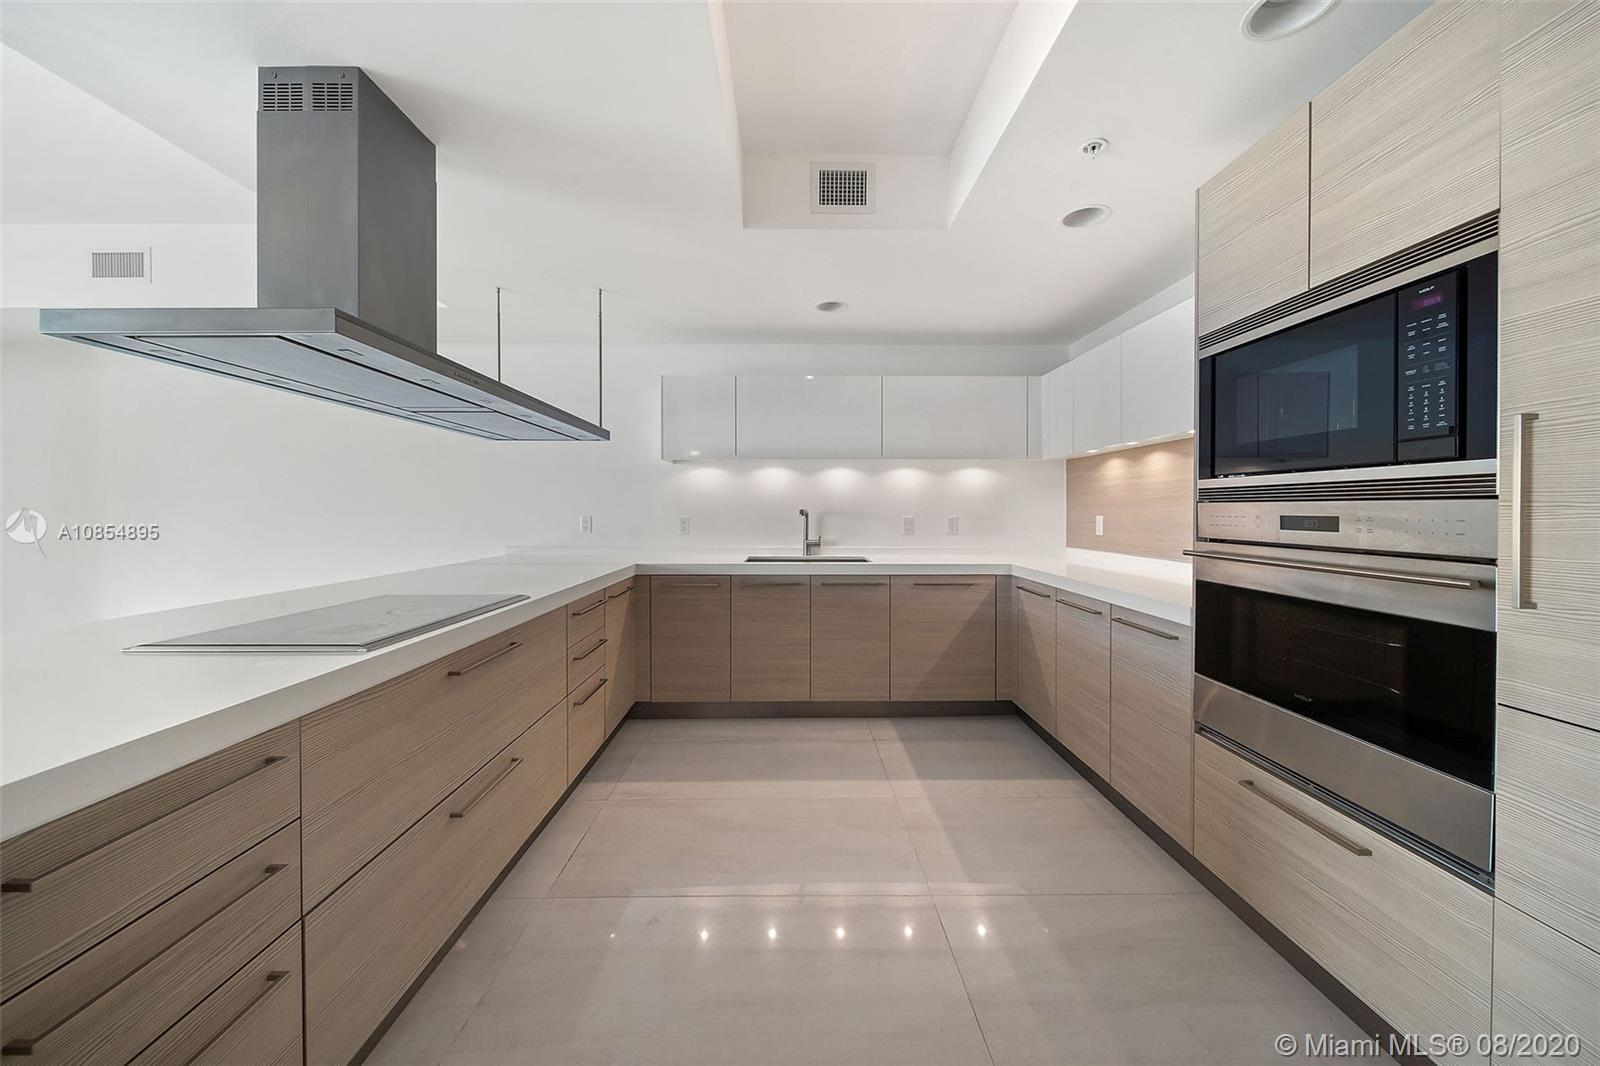 17301 Biscayne Blvd Unit: 2203 preview